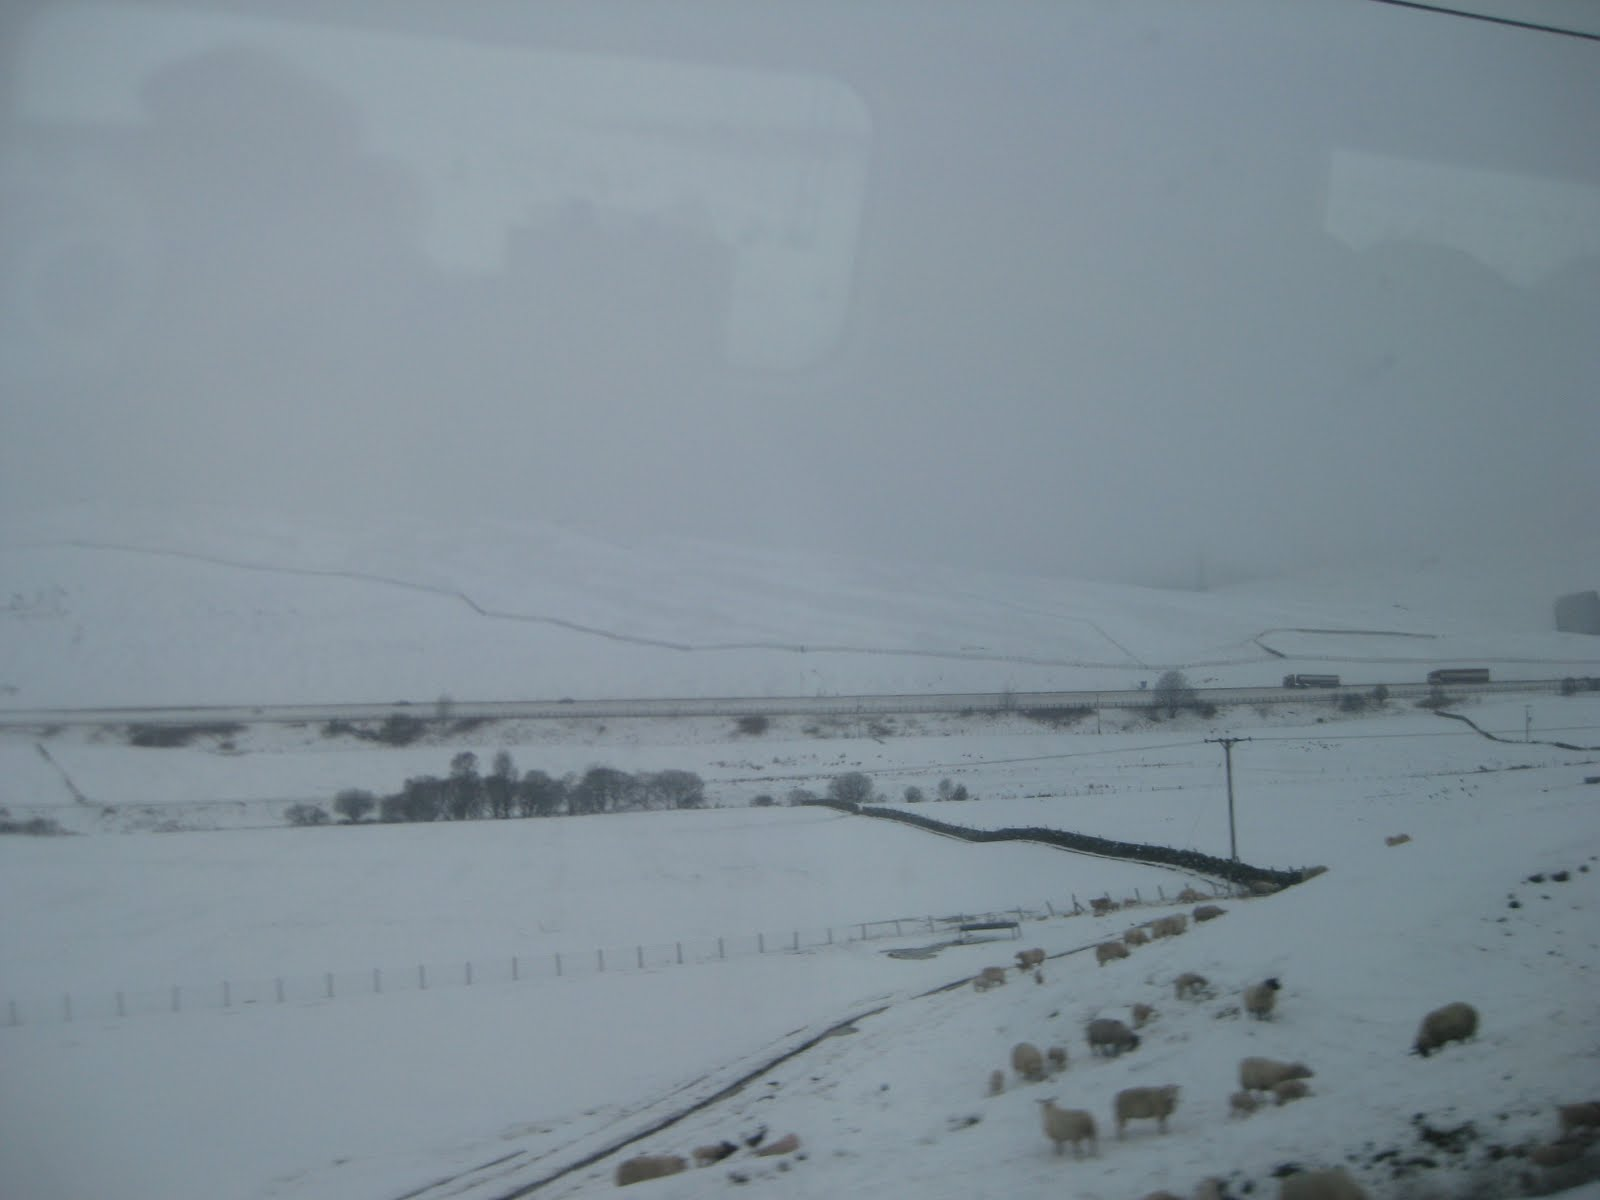 Borders region, viewed from a warm train